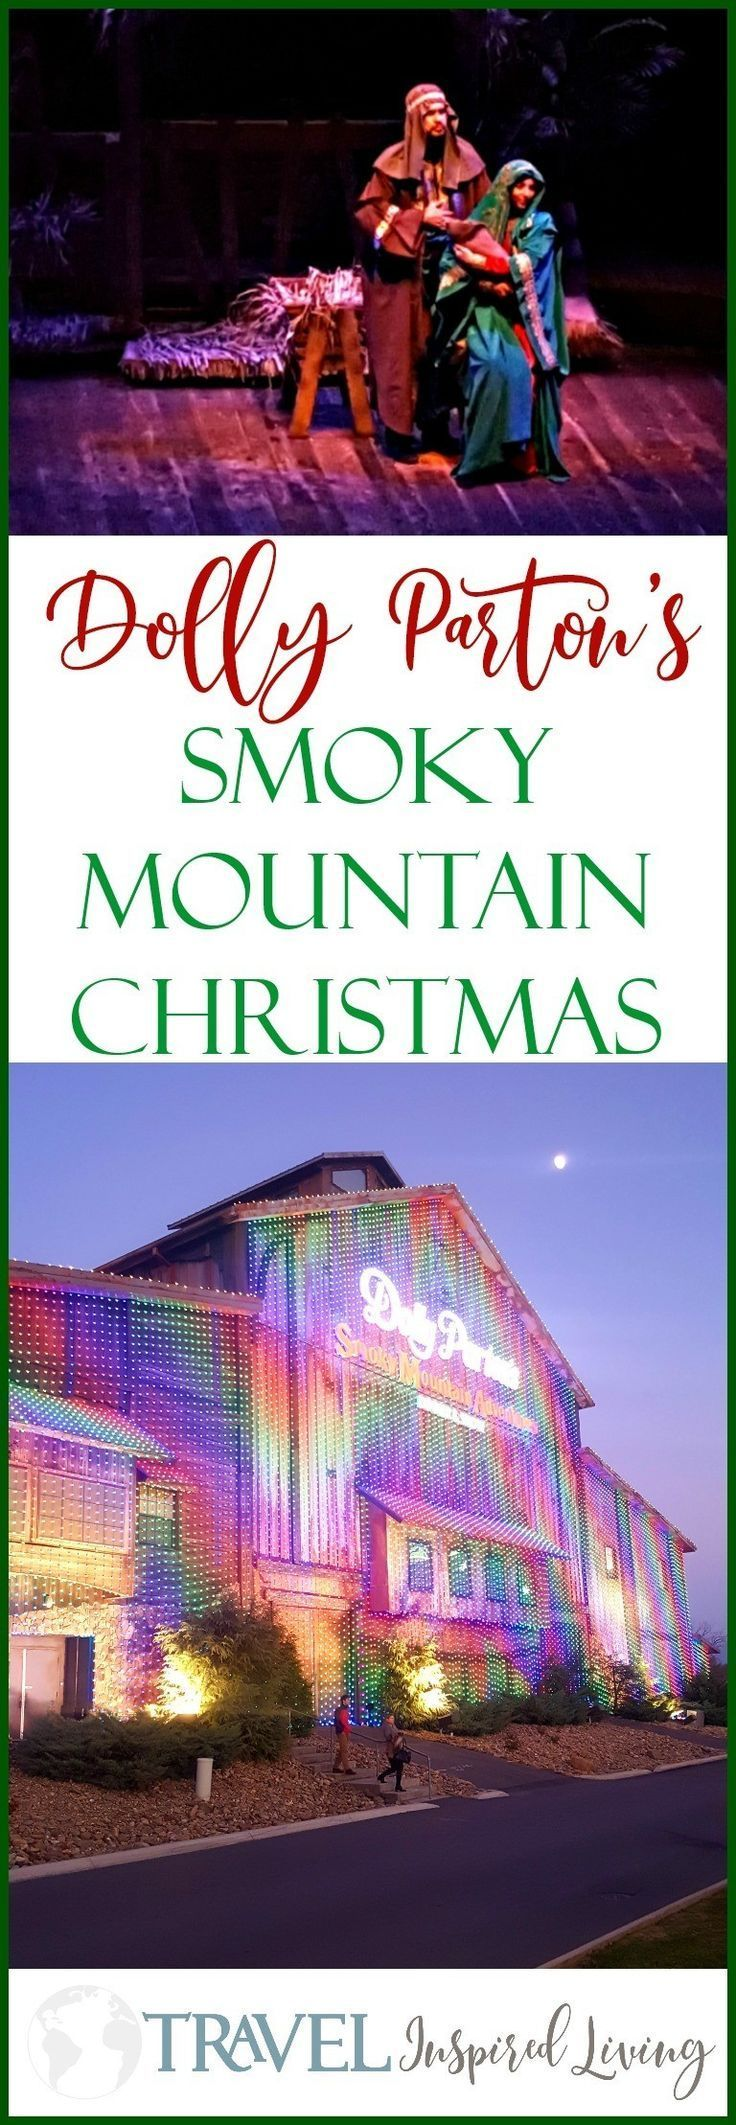 A Review of Dolly Parton's Smoky Mountain Christmas show in Pigeon Forge, Tennessee. #PigeonForge #Tennessee #DollyParton #SmokyMountains